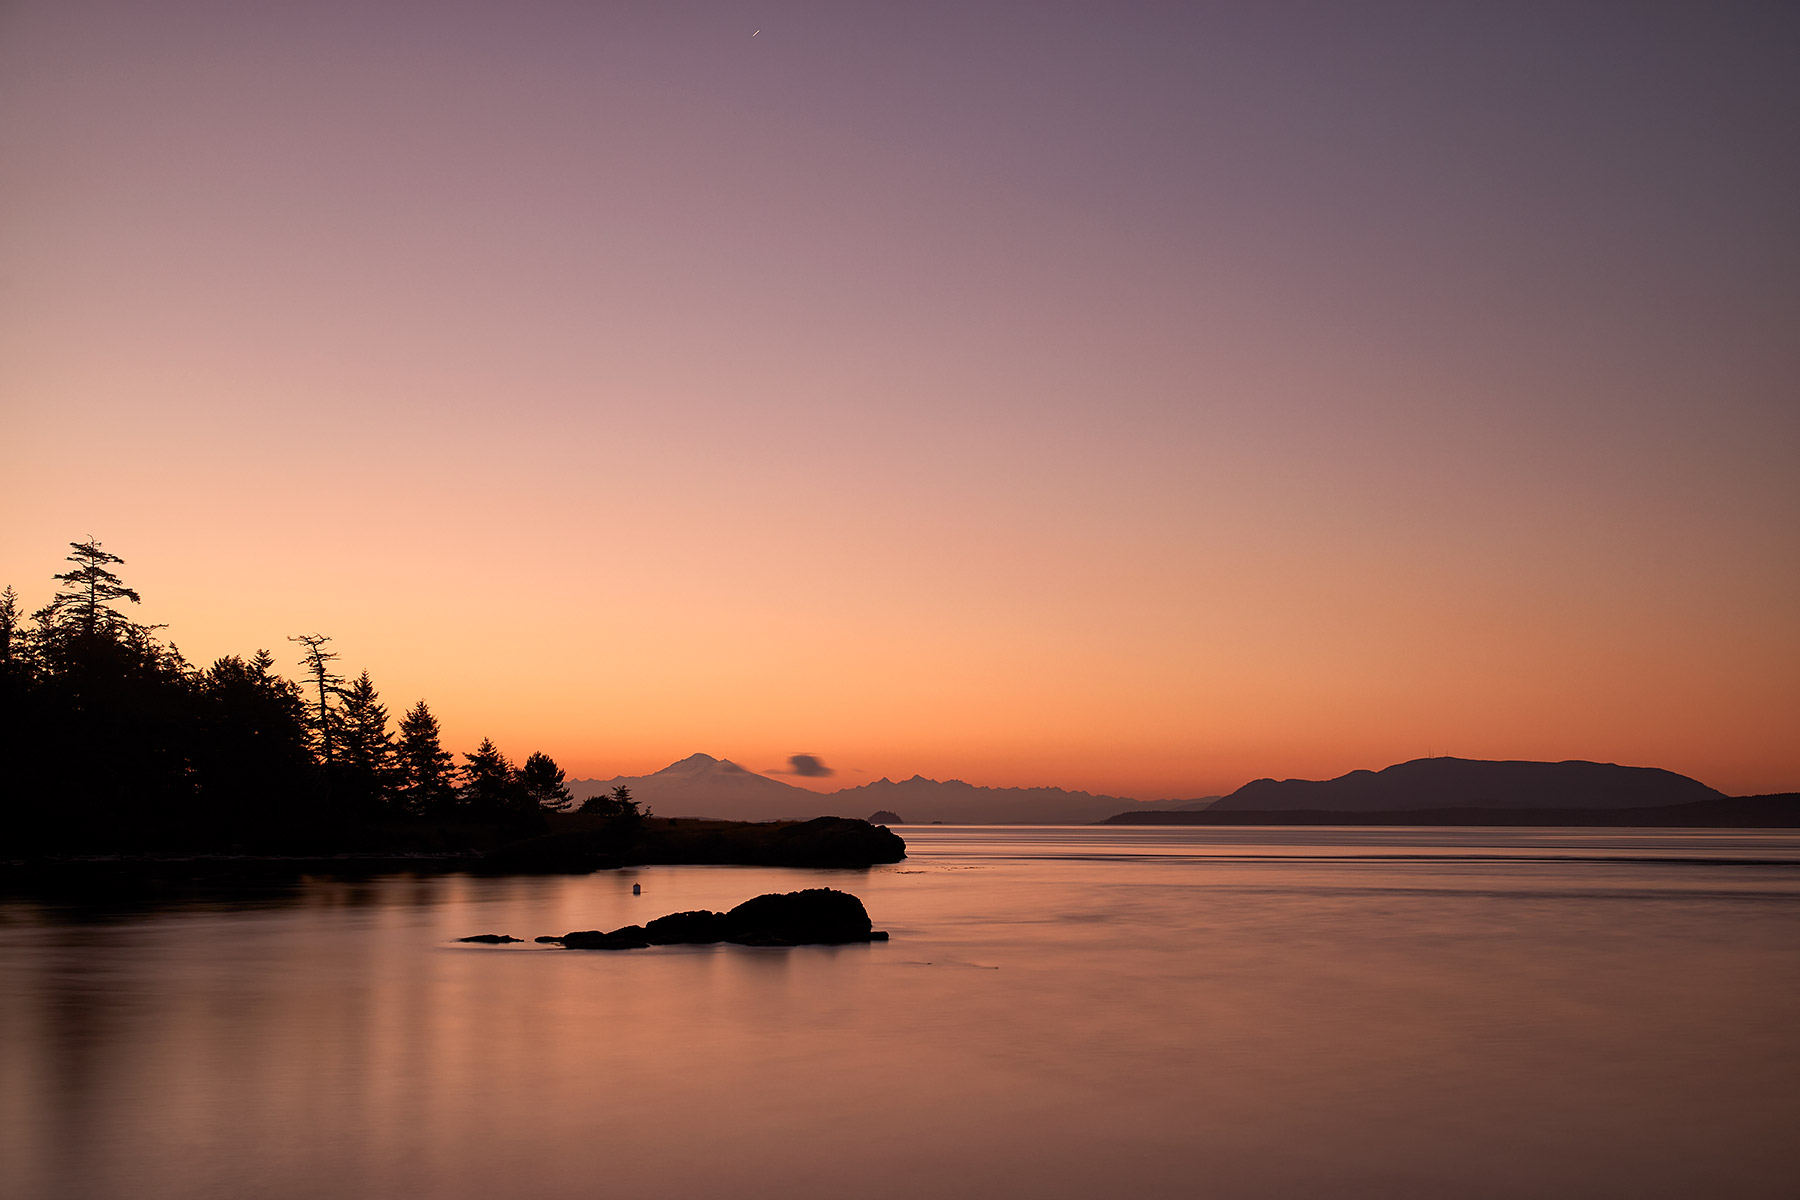 Pre-Dawn at Brooks Point, South Pender Island ©johncameron.ca